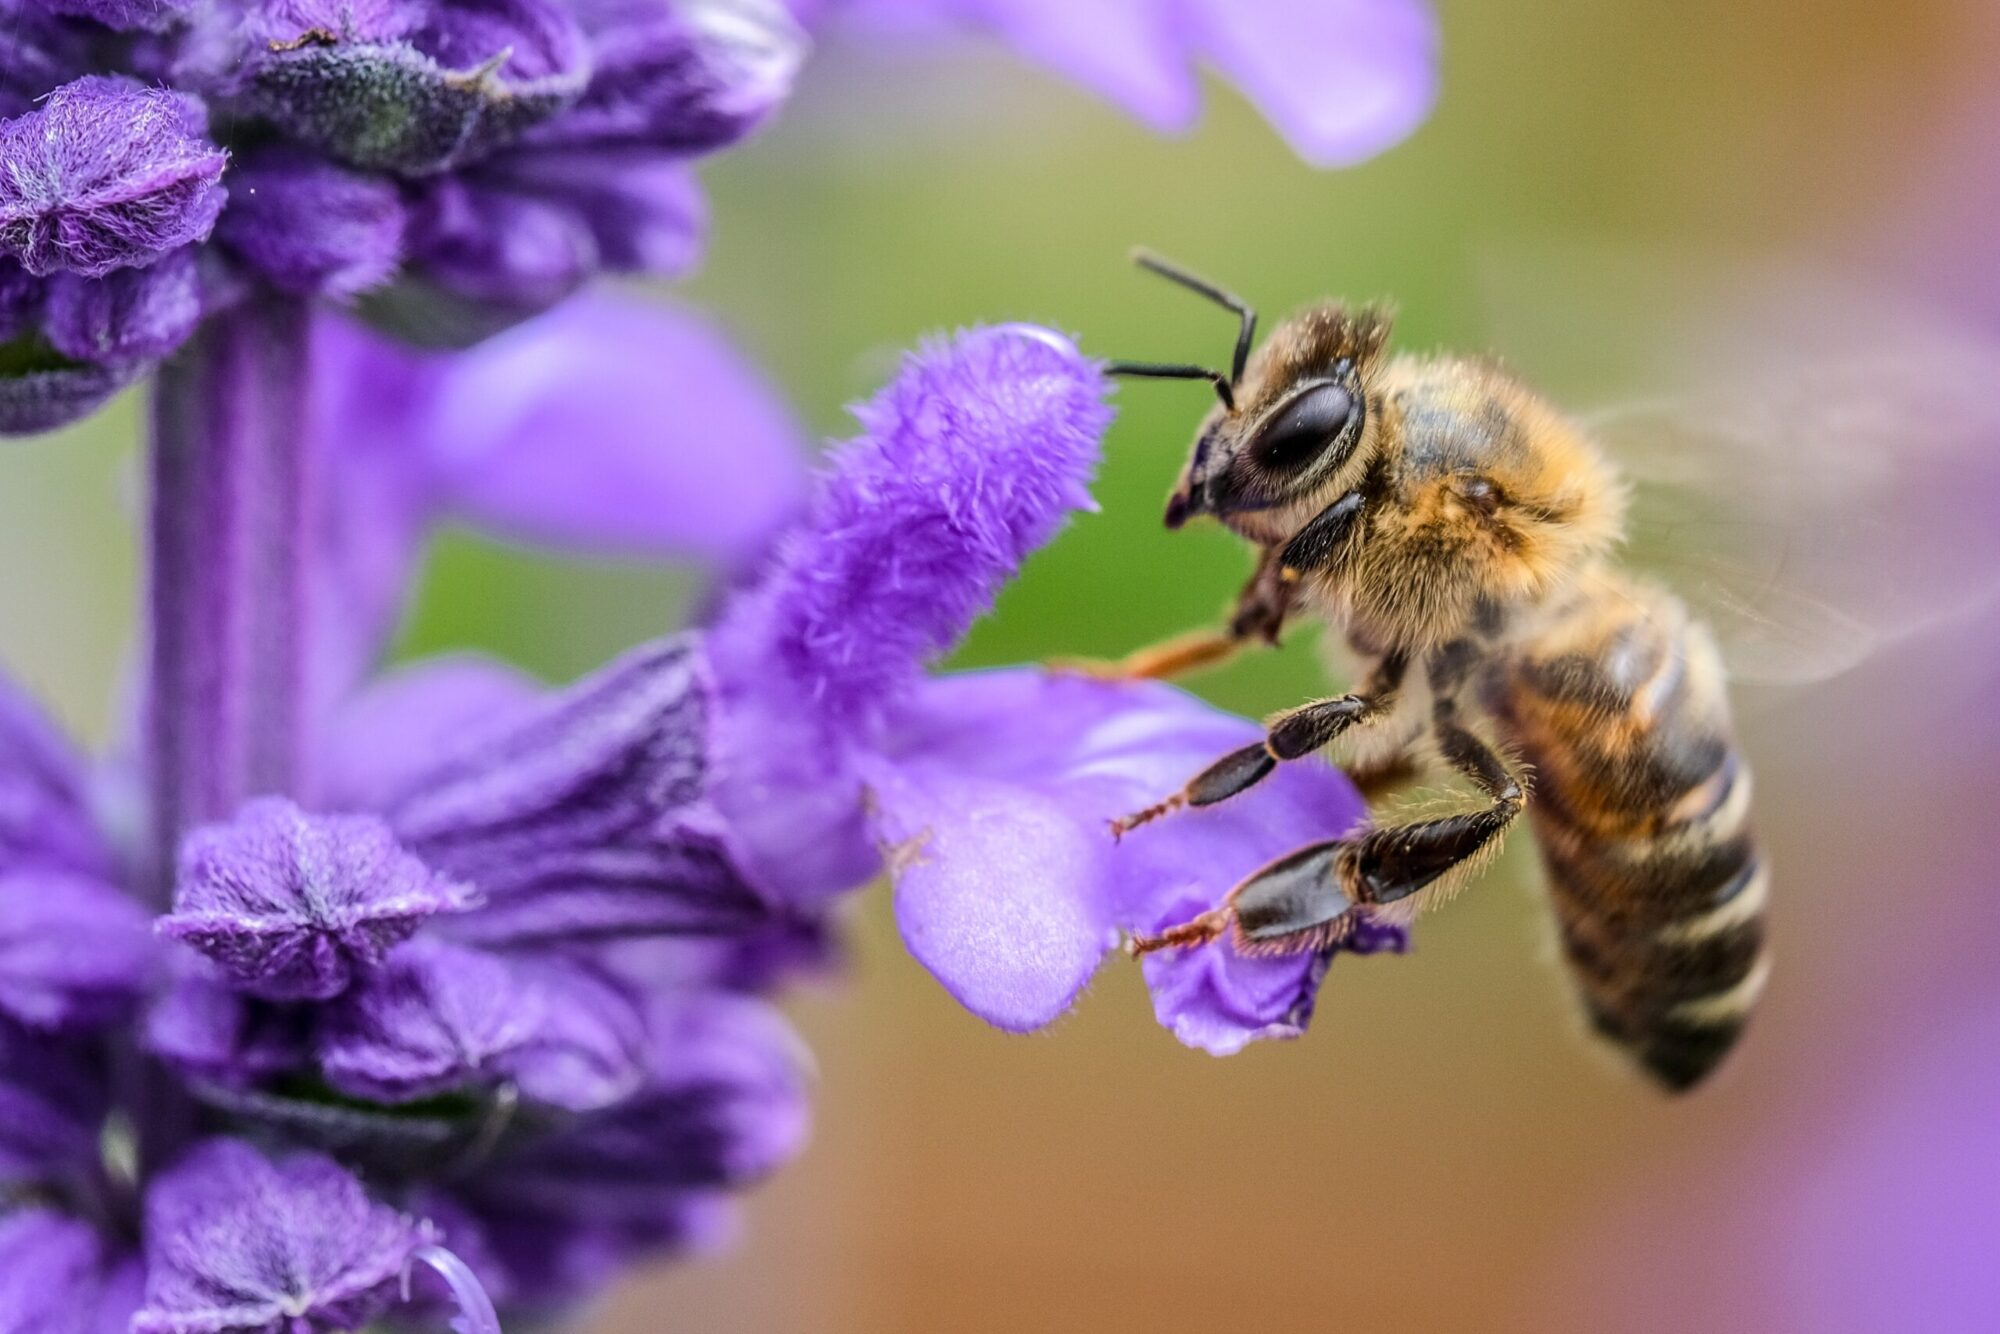 Image of a Bee on a Plant